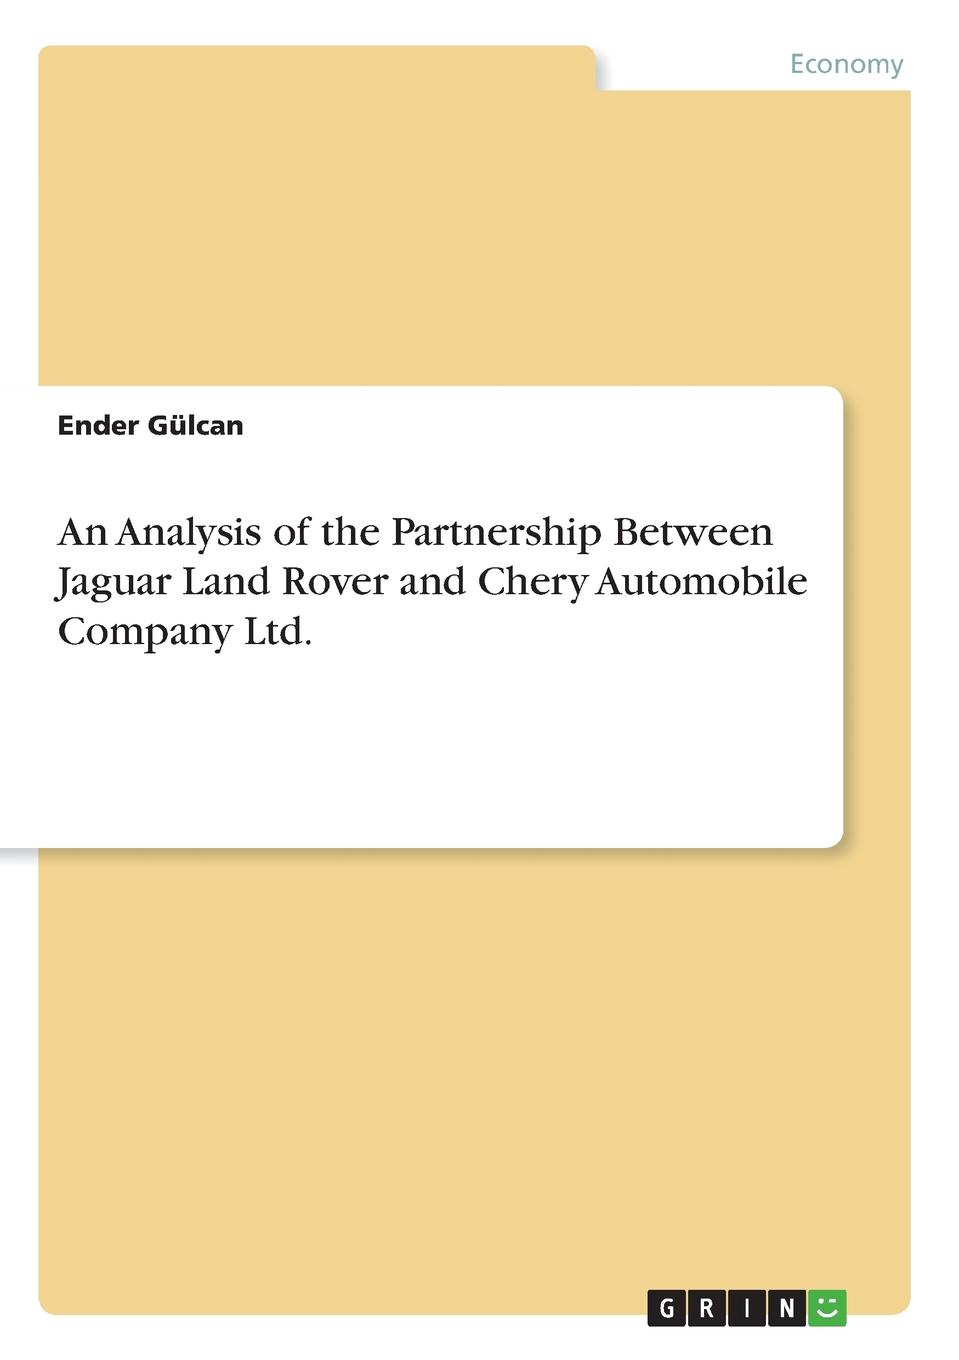 Ender Gülcan An Analysis of the Partnership Between Jaguar Land Rover and Chery Automobile Company Ltd. economic analysis of the rural labour markets in sudan